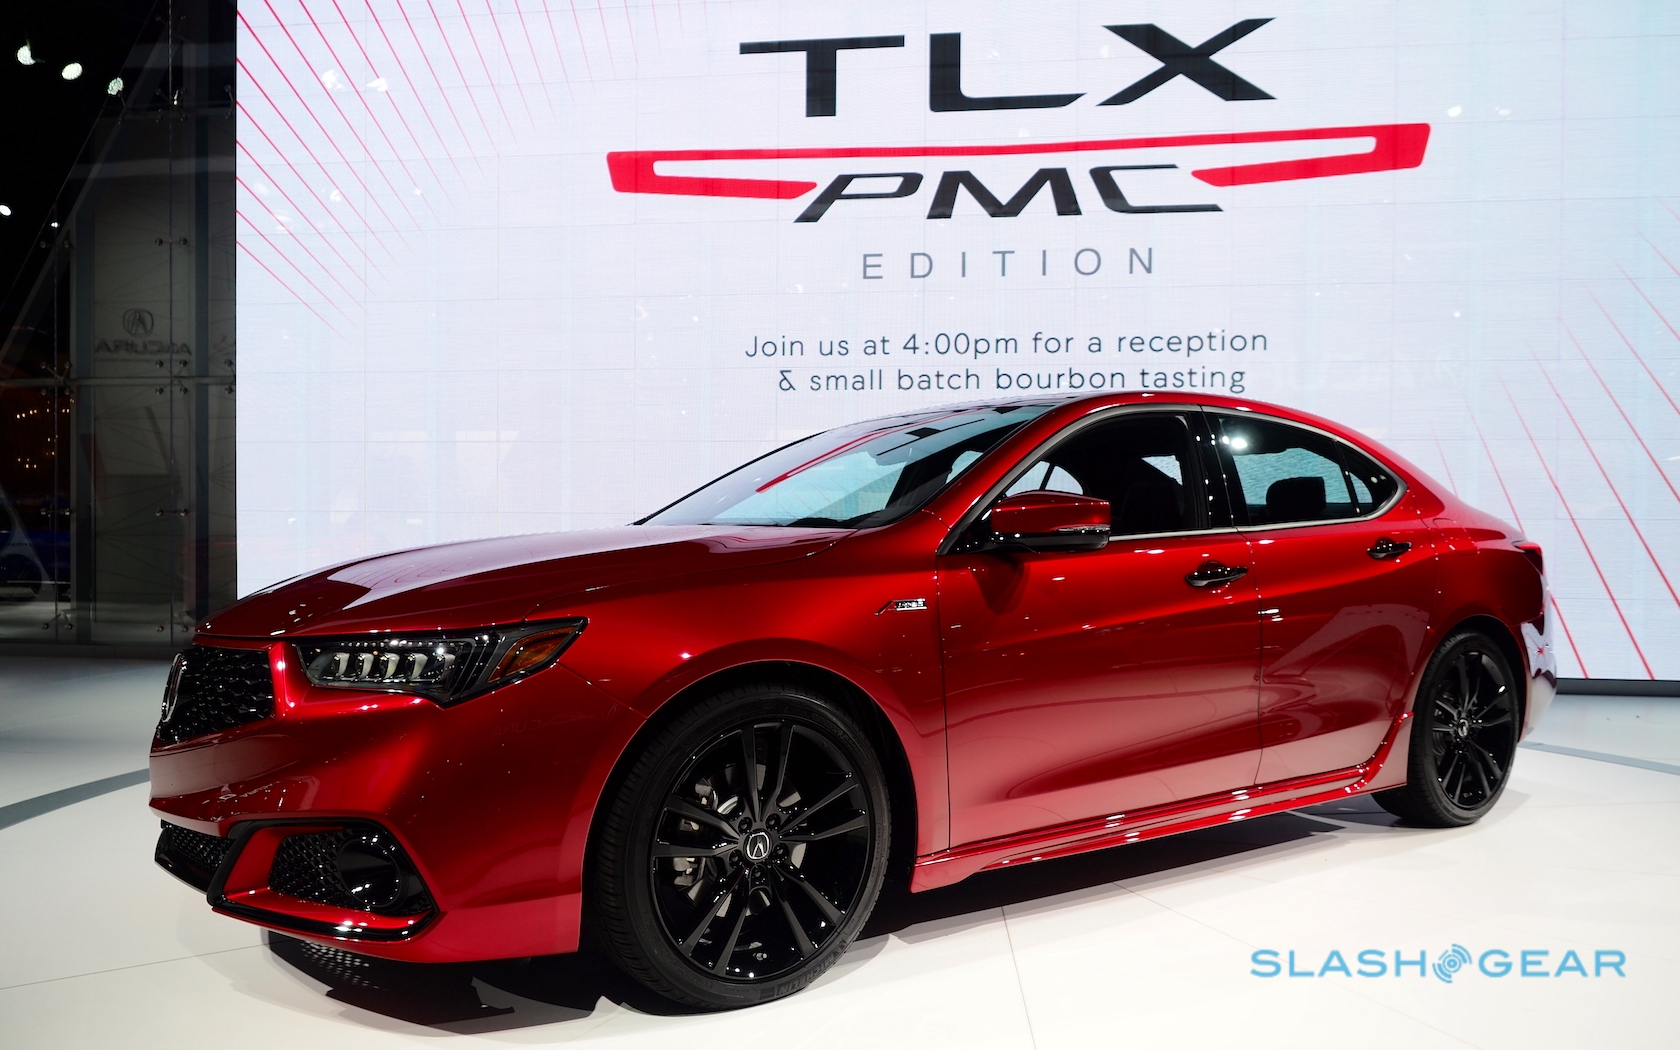 2020 Acura Tlx Pmc Edition Gallery Slashgear